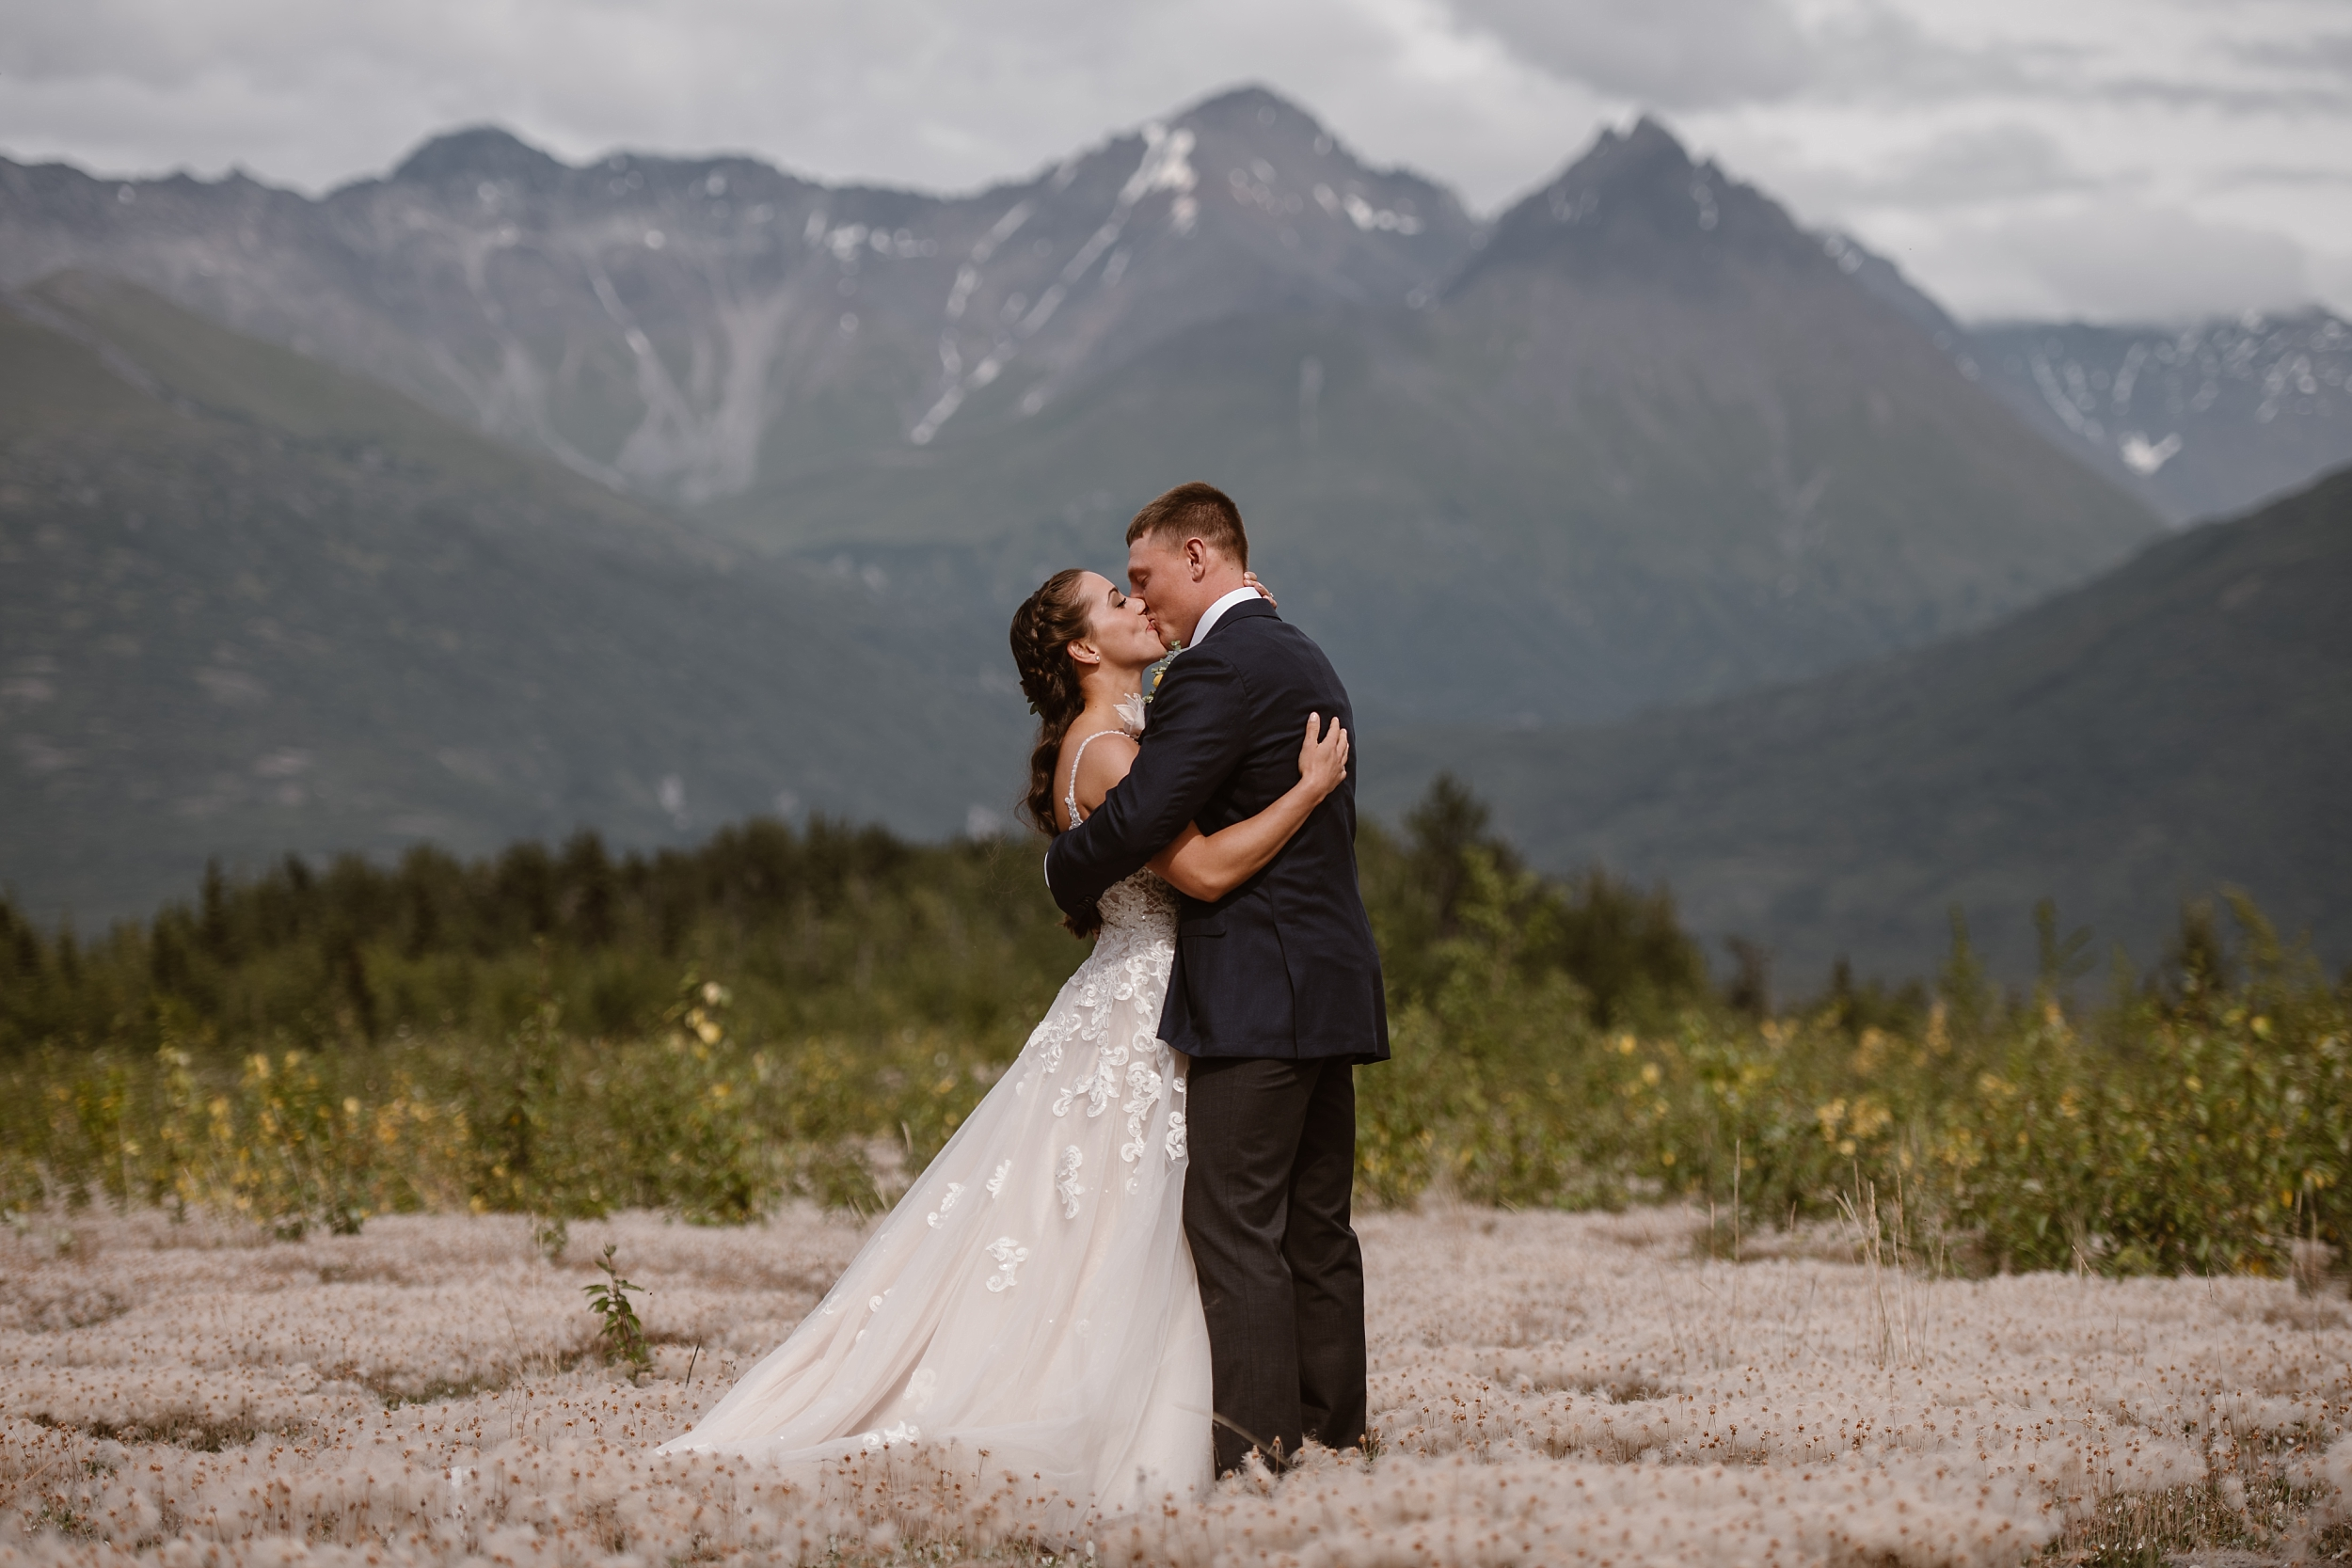 Jordyn and Connor embrace in a flowered meadow with mountains in the background near the Knik River Lodge after their first look in this elopement photo captured by elopement wedding photographer Adventure Instead.